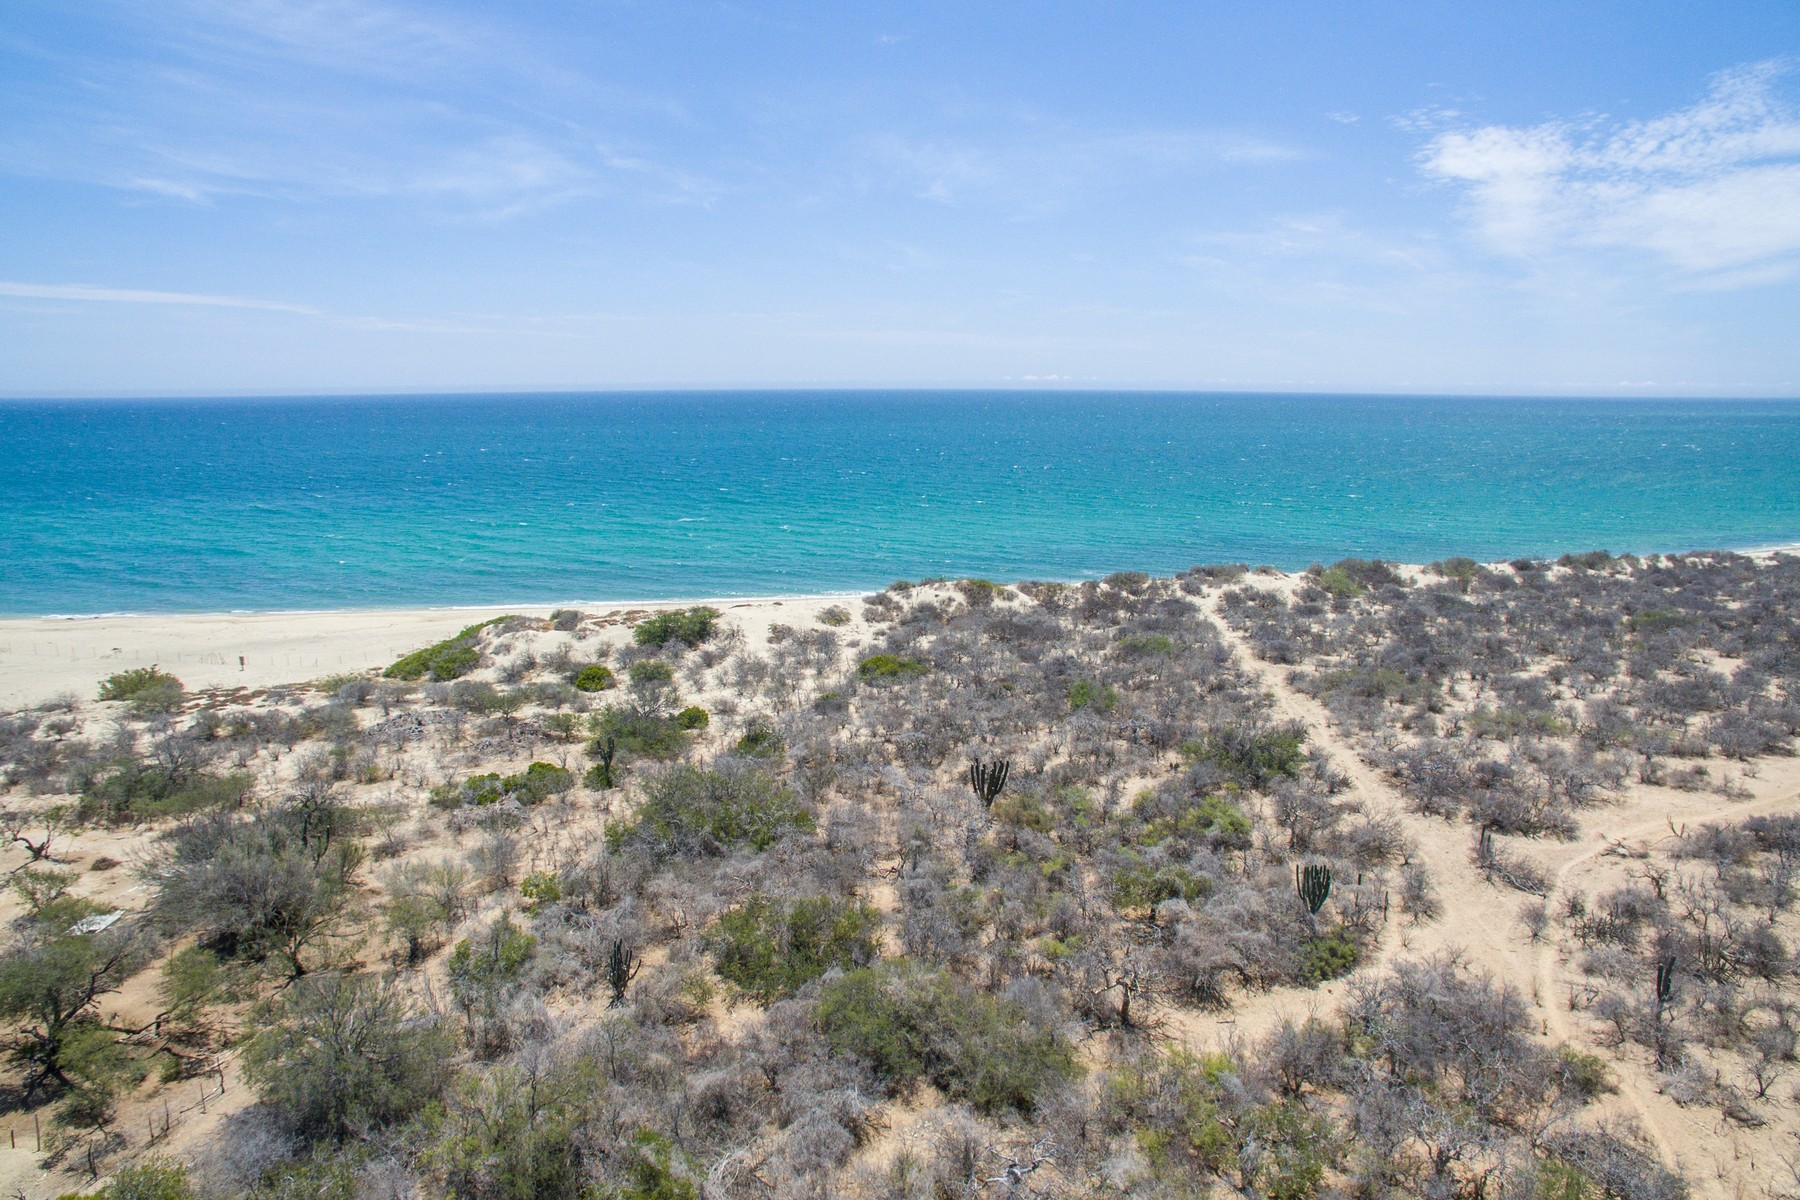 Land for Sale at GRE RINCON CABO PULMO La Ribera San Jose Del Cabo, Baja California Sur 23570 Mexico